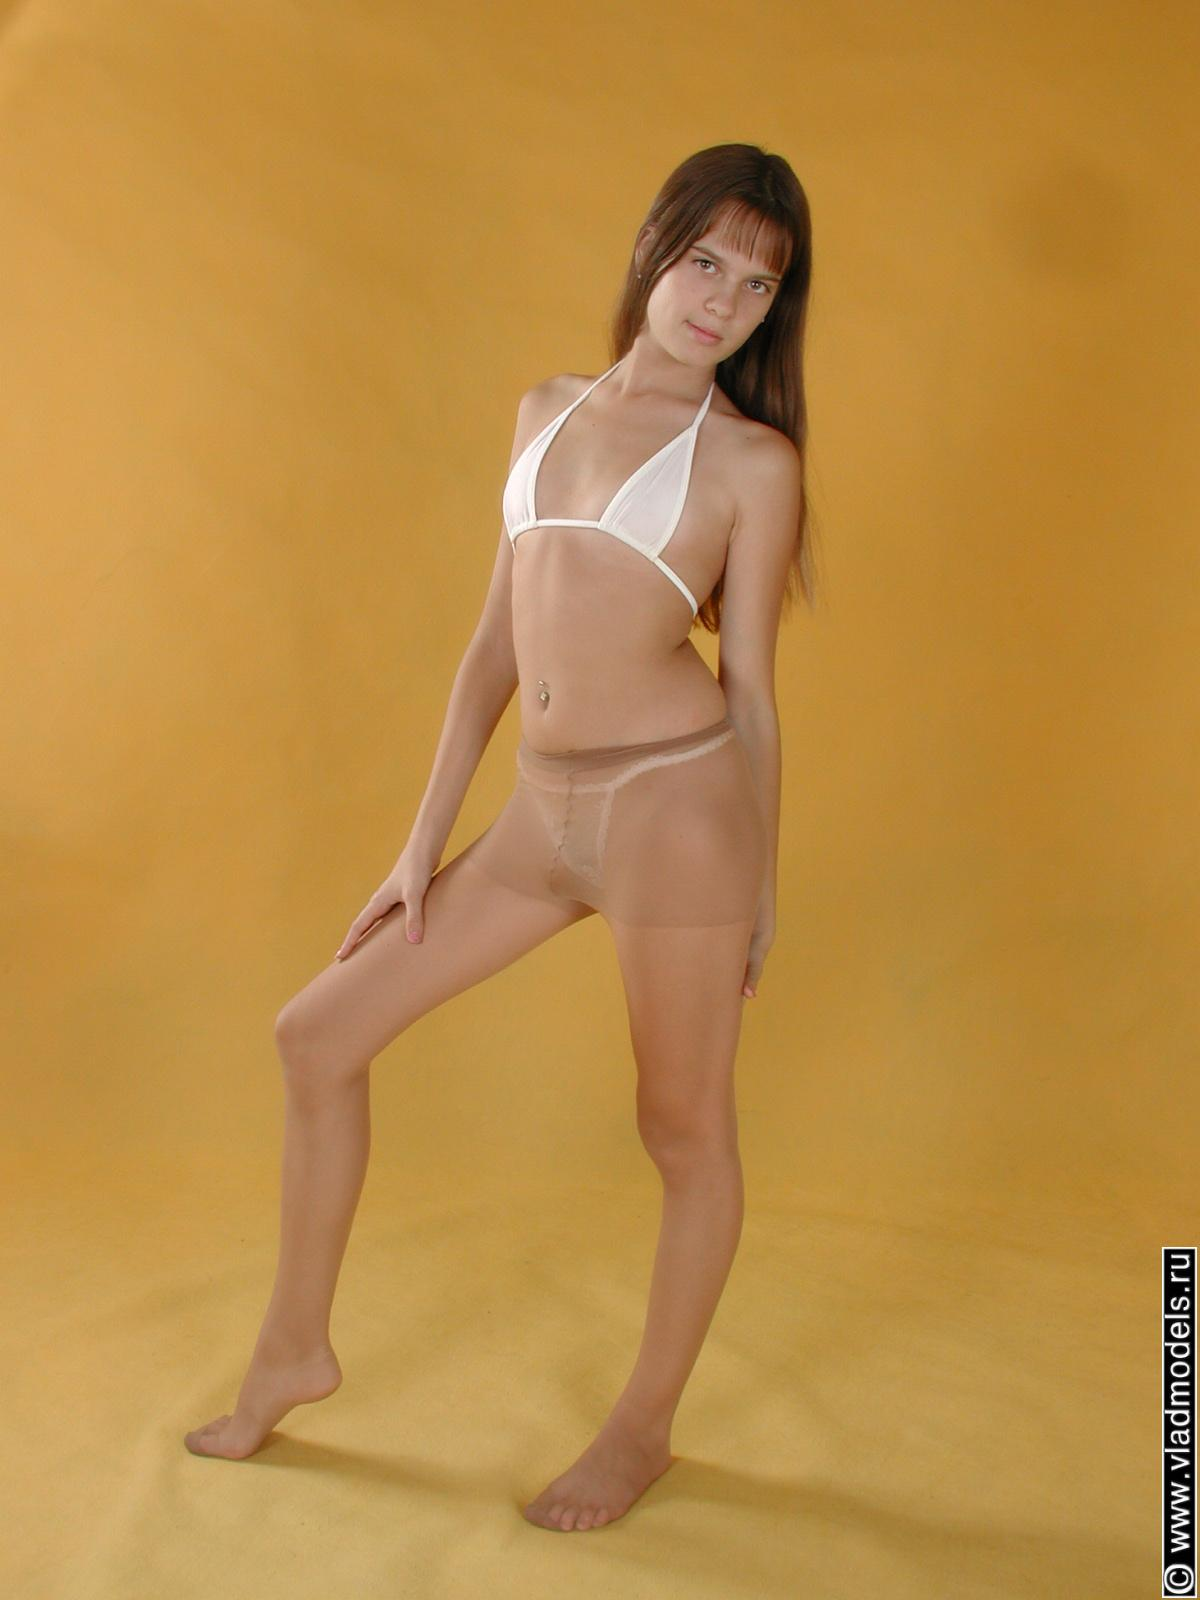 More videos alisa vlad model pantyhose tits Love this